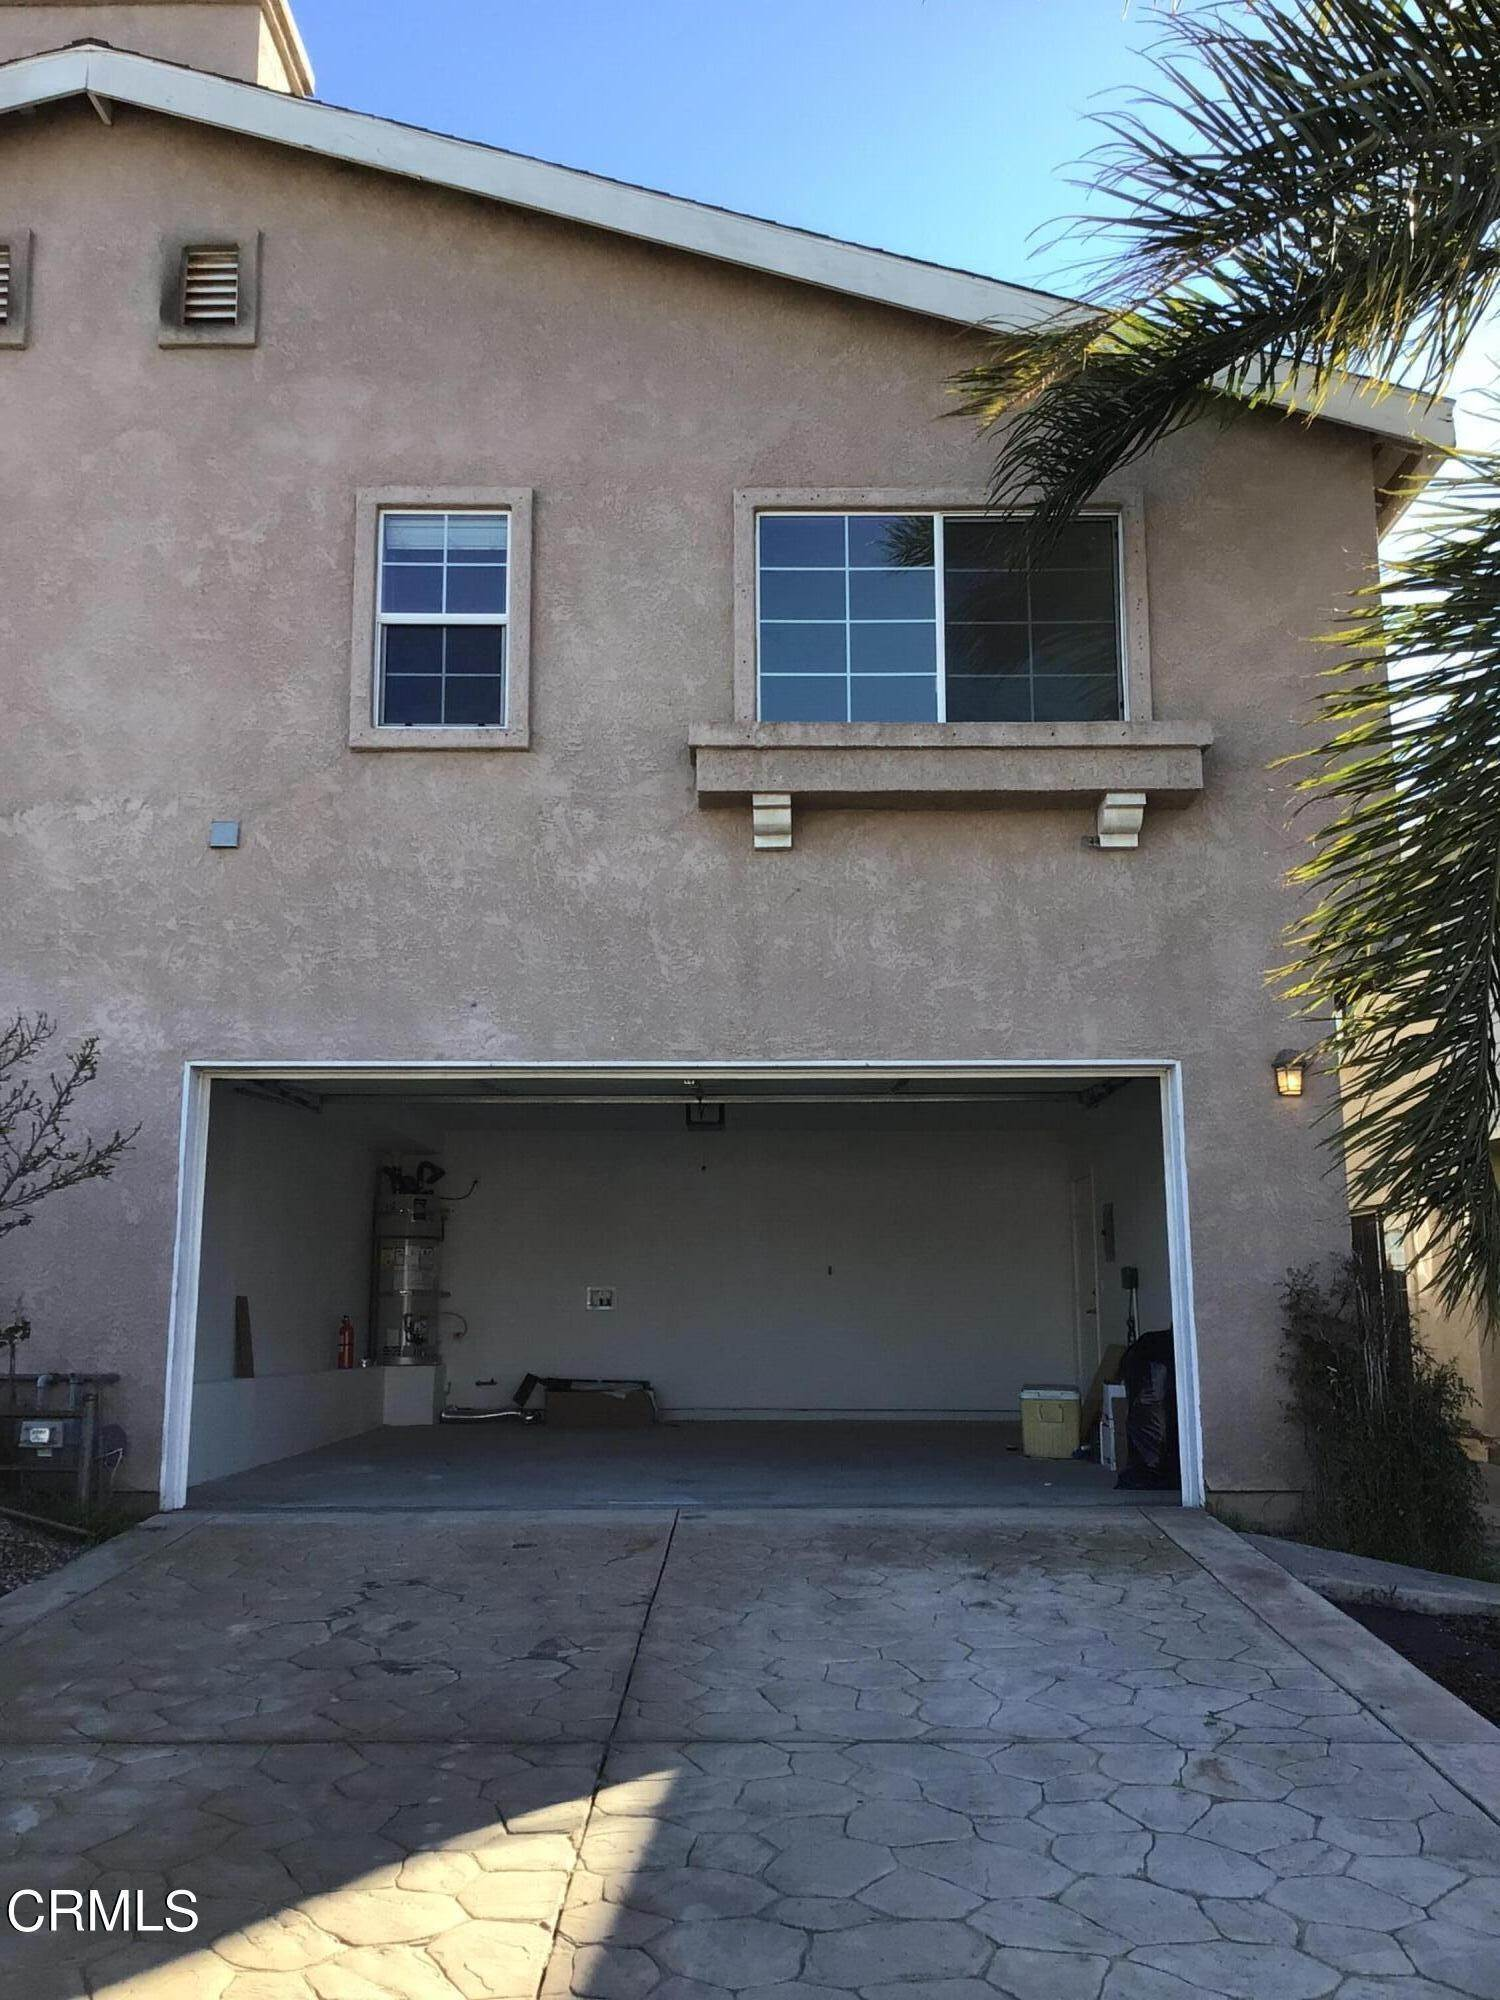 40. townhouses for Sale at 4922 Catamaran Street Oxnard, California 93035 United States